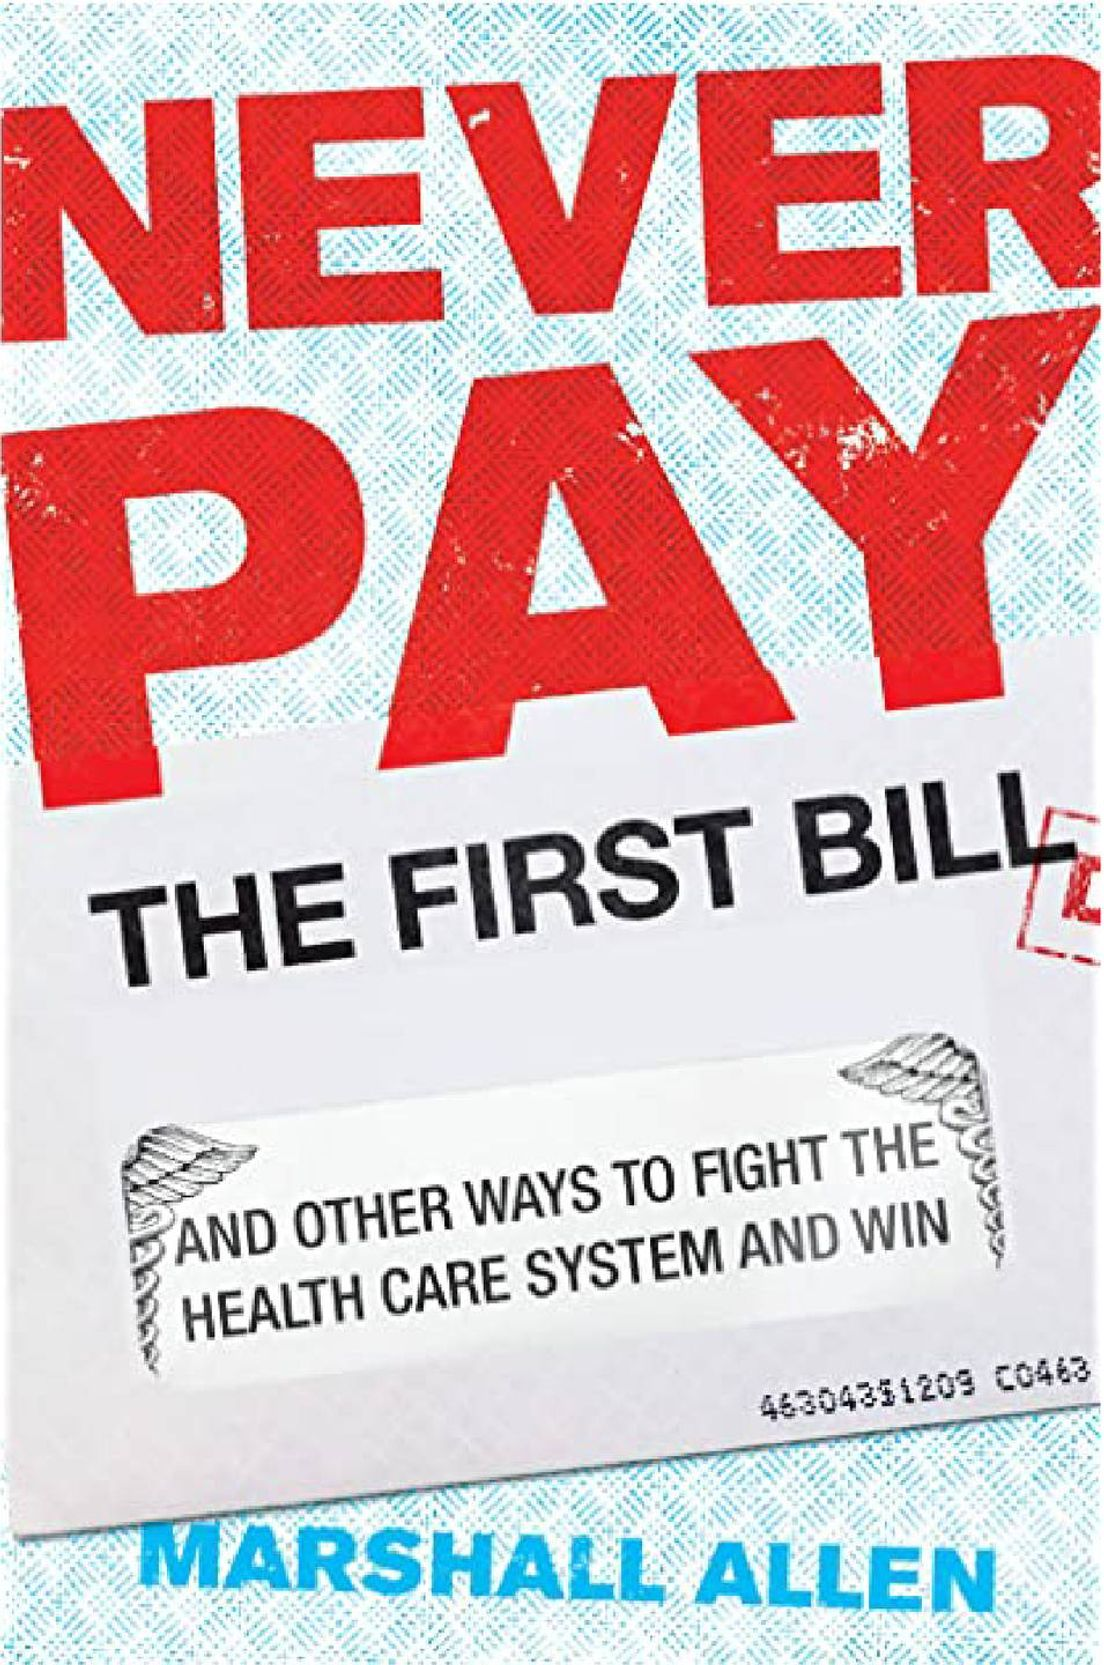 """Book Cover of """"Never Pay The First Bill"""" by Marshall Allen, Next Avenue, medical bill, health care"""